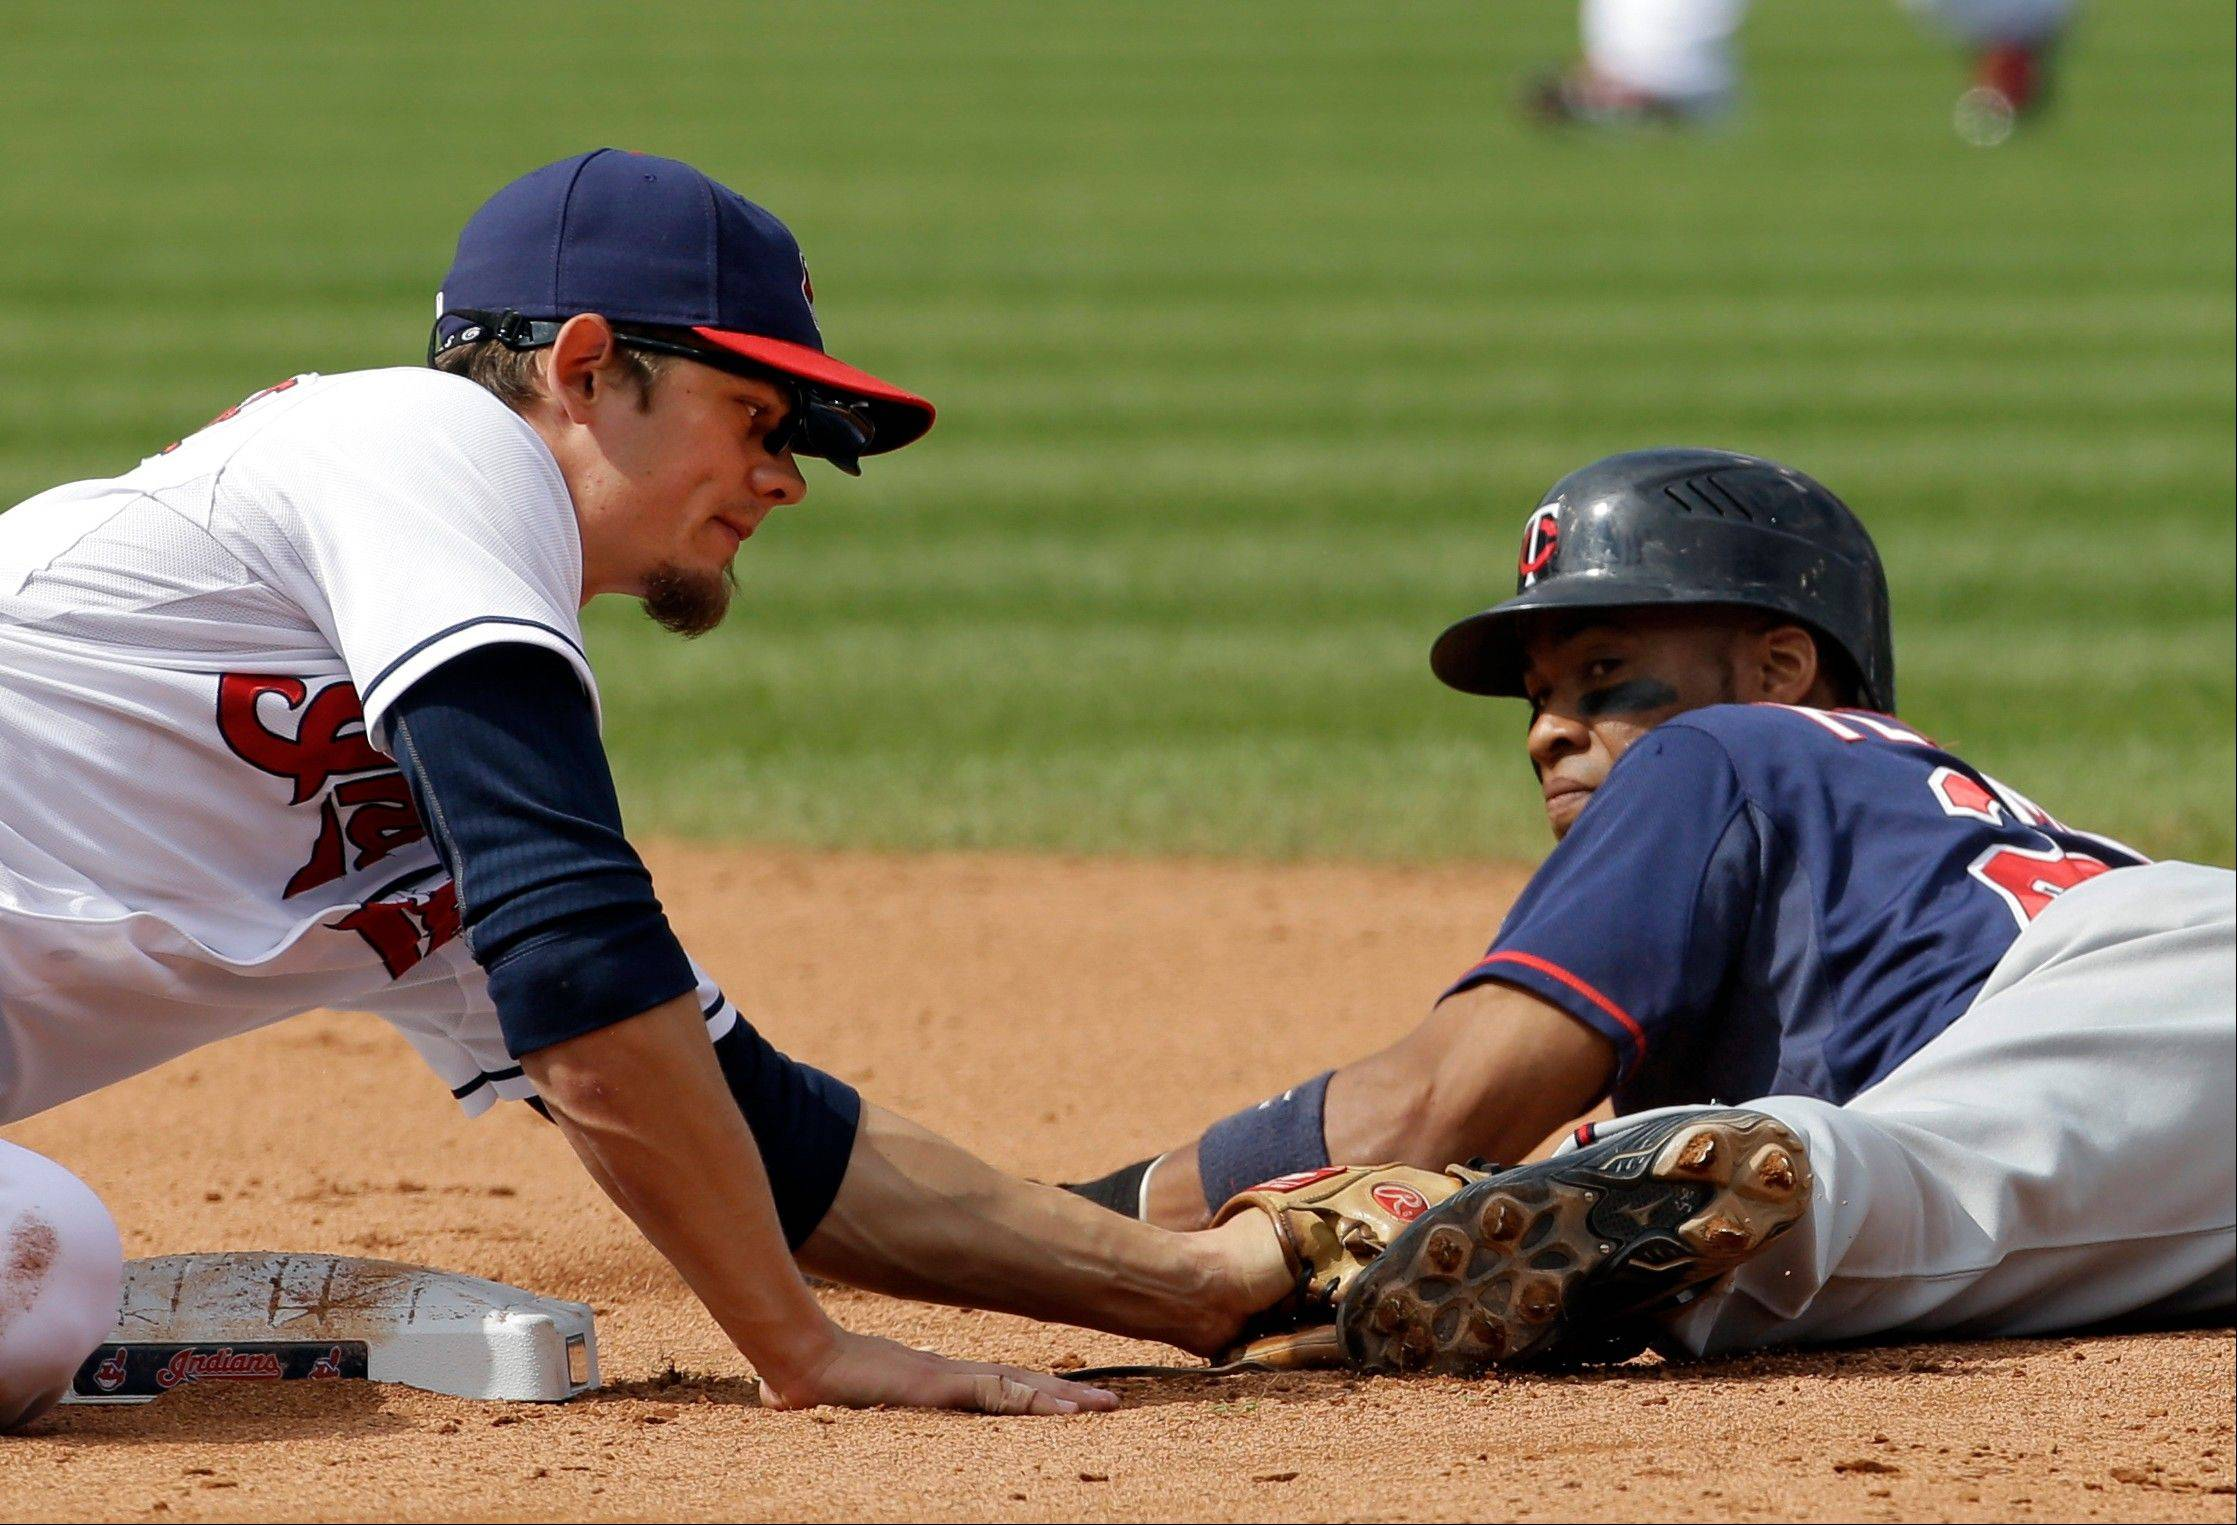 Cleveland Indians shortstop Brent Lillibridge, left, tags out Minnesota Twins' Pedro Florimon trying to steal second earlier this season.